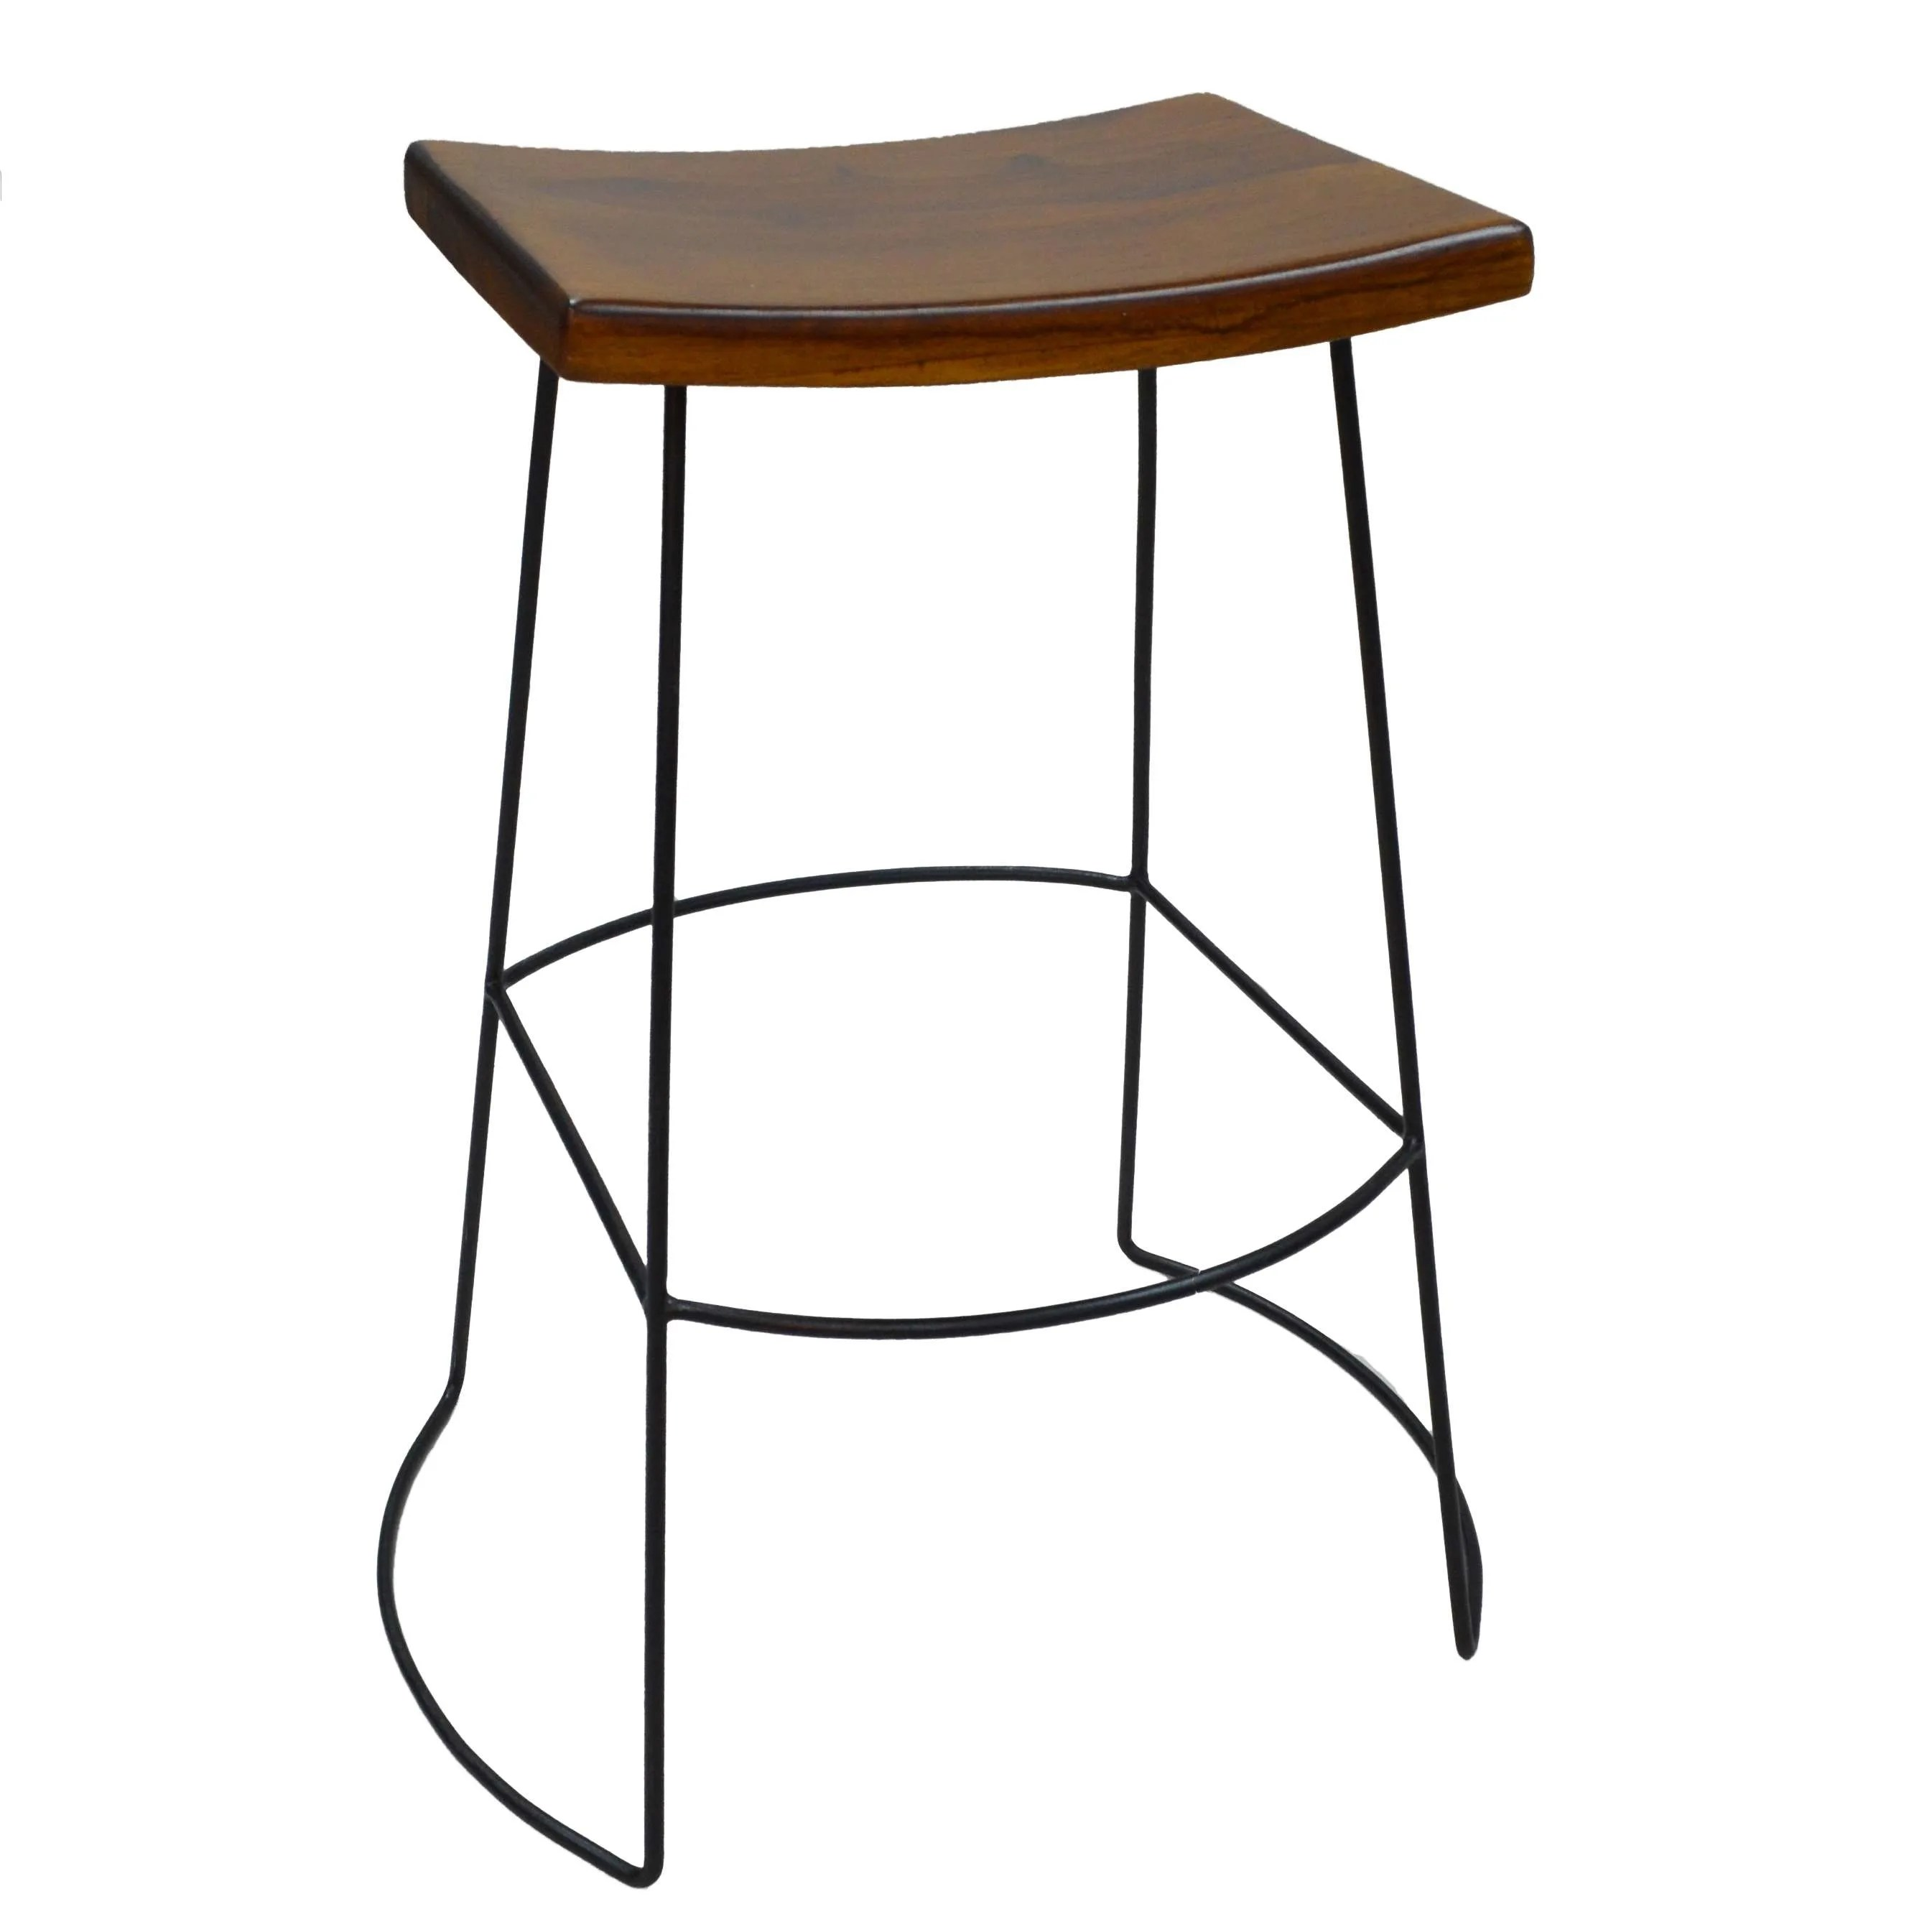 saddle seat chairs reviews antique dining value carolina chair table reece brown bar stool with metal frame